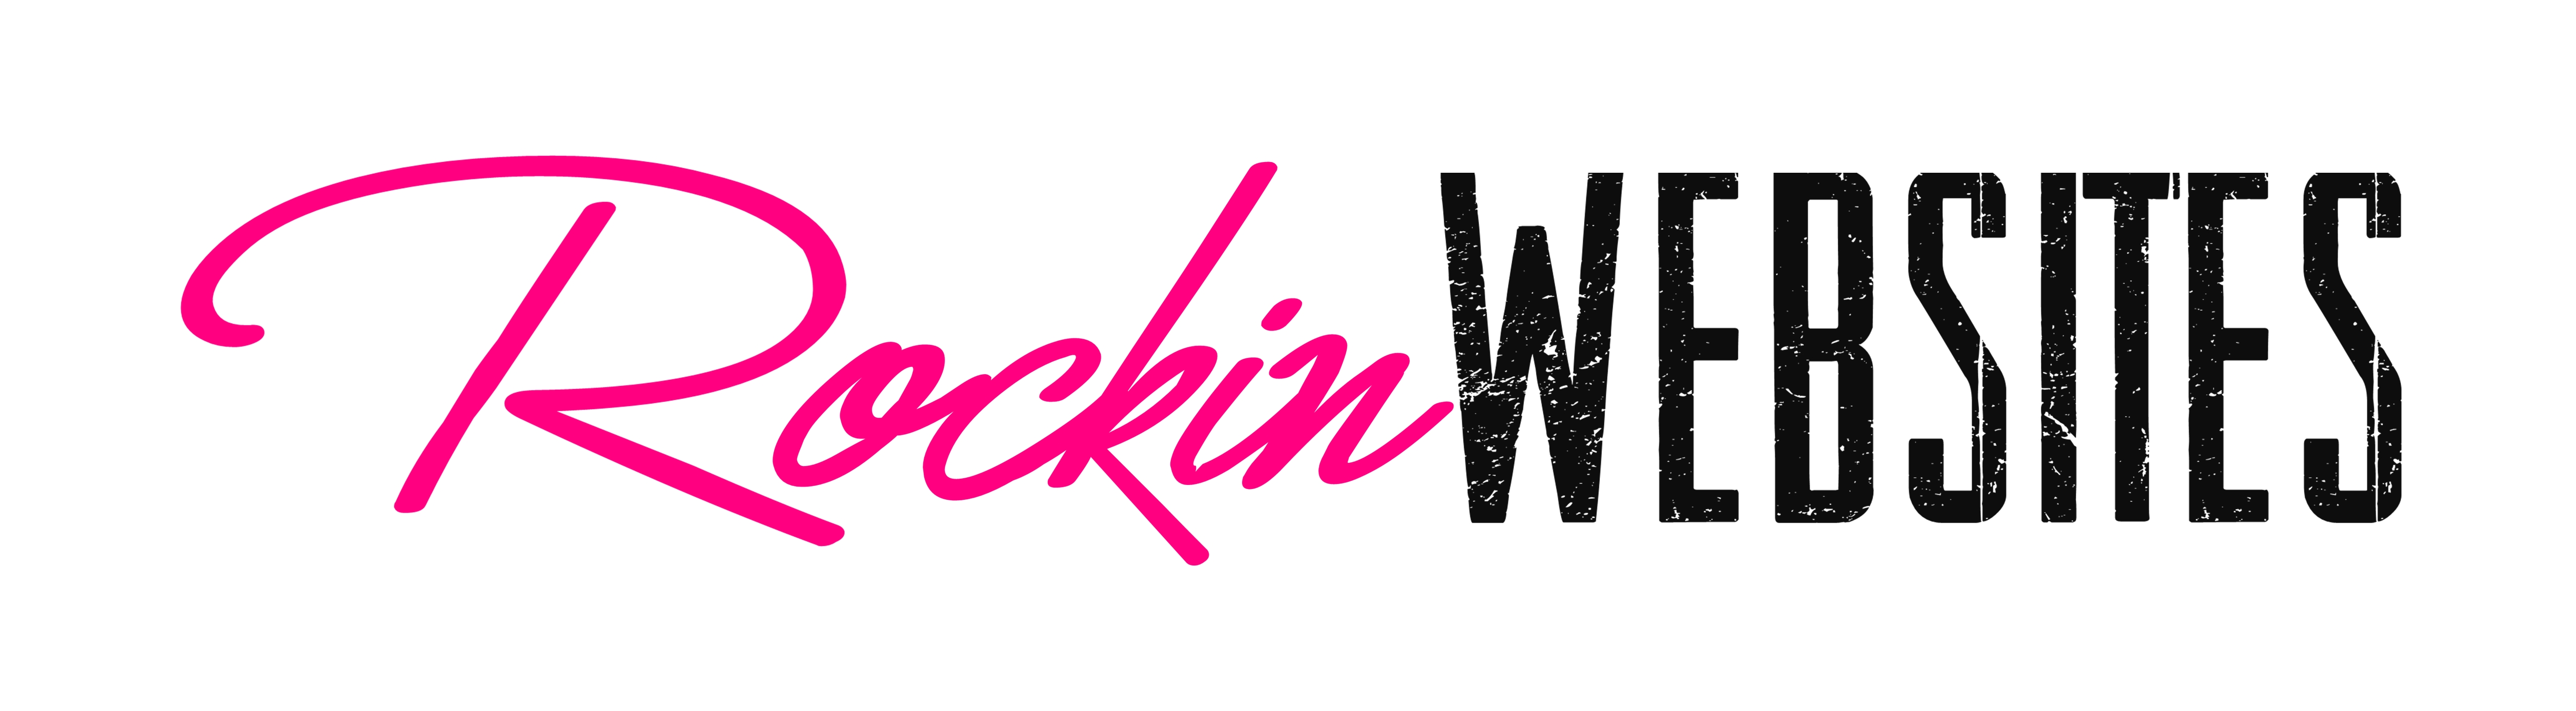 rockin_websites_logo_black